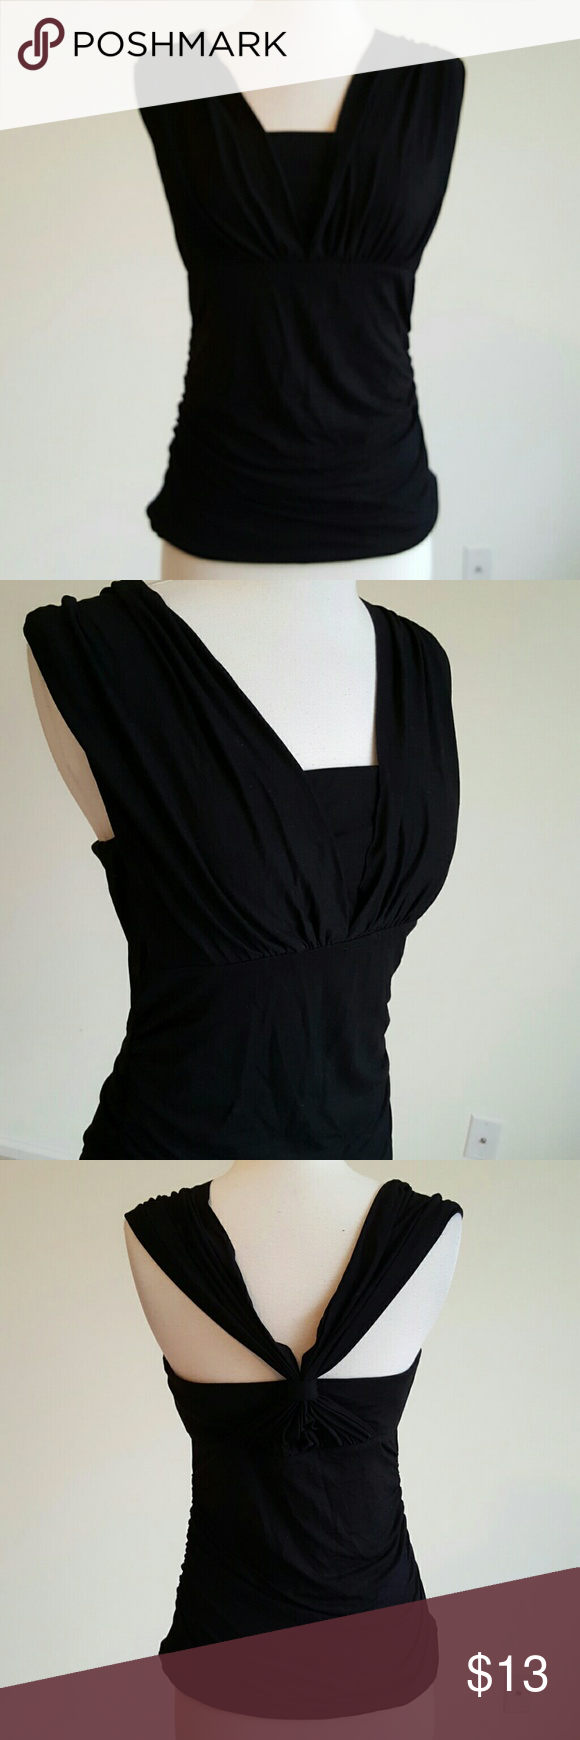 🆕NWT White house Black Market Convertible top 🖤NWT Brand new with tags attached. Comes with booklet to switch styles as well as extra straps White House Black Market Tops Tank Tops